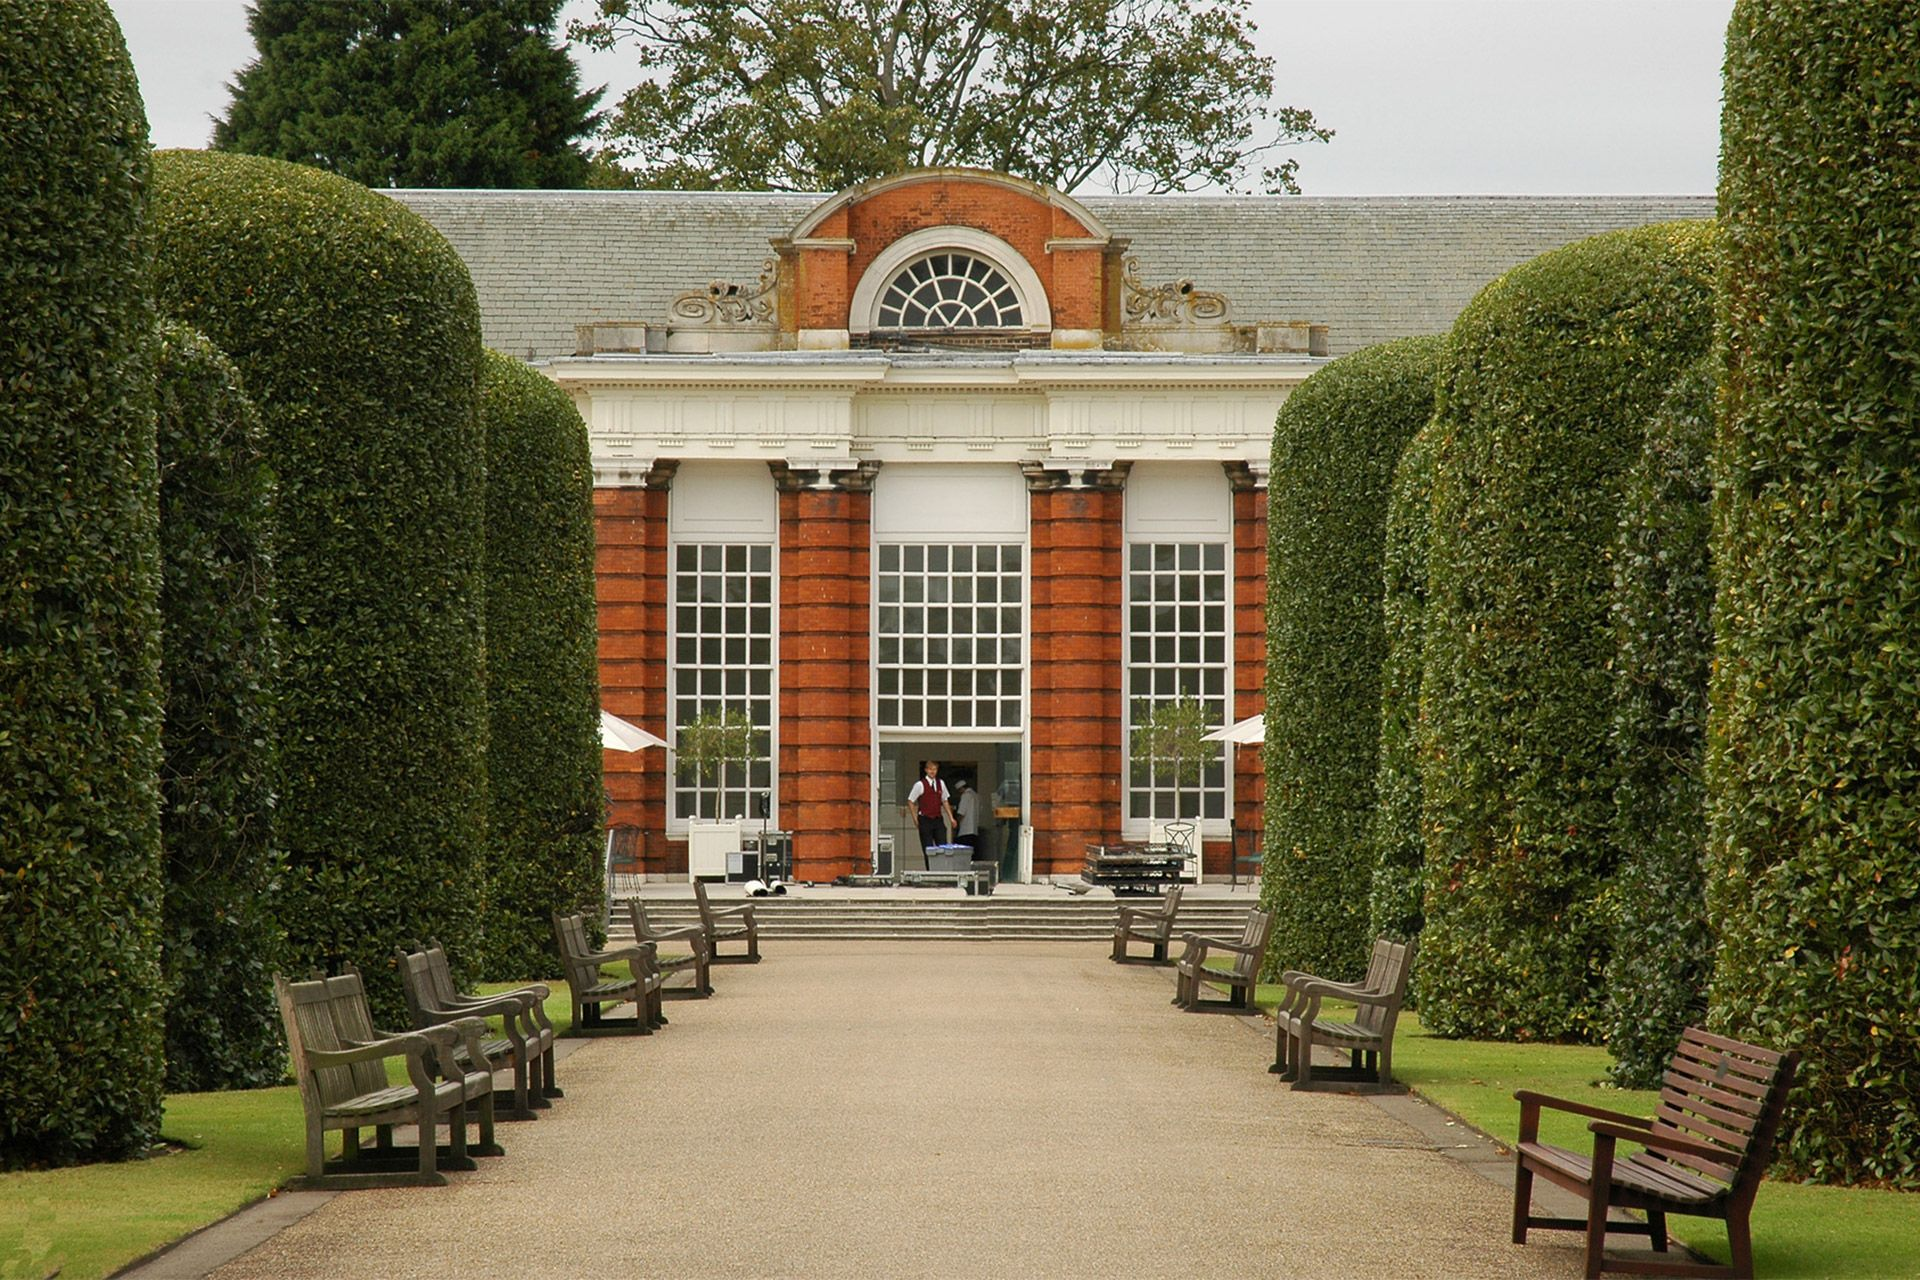 Visit Kensington Palace and the beautiful gardens